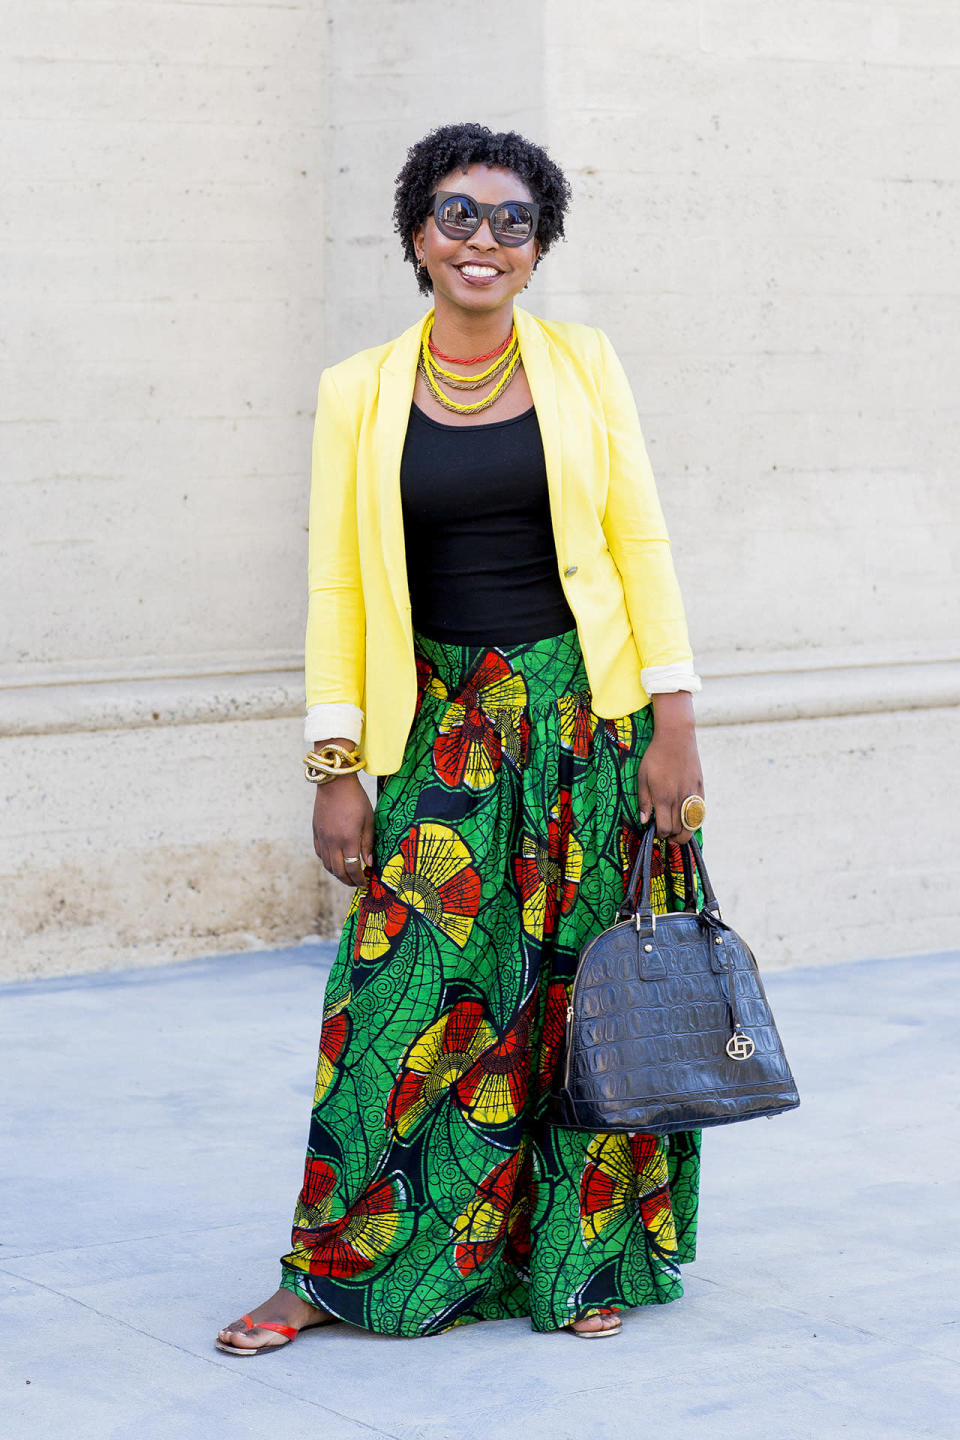 """<p><b>Yahoo Style: You look amazing!<br>Laine Sims: </b>A few African friends brought me back this skirt from Kenya. And the necklaces are from Nigeria. The glasses are from <a href=""""http://zoesvintique.com/"""" rel=""""nofollow noopener"""" target=""""_blank"""" data-ylk=""""slk:Zoe's Vintique"""" class=""""link rapid-noclick-resp"""">Zoe's Vintique</a> in South L.A.</p><p><b>Are you the fiercest dresser here?<br></b>Umm, well, humility is a grand thing! Let's just say, I like to represent myself well, and I do get compliments, so I guess I'm doing something right. I've been coming to this church for eight years.</p><p><b>What does it mean to """"love on?""""<br></b>Without being too Christian-y, the message of Jesus is to love people, whether that's helping them or connecting them to a helping hand. It's not complex.</p><p><b>How does that play out in your daily life?<br></b>I'm a very social person, relational. I've been at a new job now probably one and a half months, and I've been able to be a light when co-workers are discouraged, and hopefully it makes their day better.</p><p><b>Do you talk to them about Jesus?<br></b>No. Of course, church comes up in conversation because it's a big part of my life. But mostly I try to be an example of who God is. They know there's something different about me, and when they get to know me, they're like, """"Oh, that's it!""""</p><p><b>Would this church get into social-justice issues like #BlackLivesMatter?<br></b>We don't really get too involved in social justice. All we do is love on people. We have an organization called <a href=""""http://generositywater.com/"""" rel=""""nofollow noopener"""" target=""""_blank"""" data-ylk=""""slk:Generosity Water"""" class=""""link rapid-noclick-resp"""">Generosity Water</a> that raised money to build over 500 water wells in countries in need. We're also building a baseball field in Haiti.</p>"""